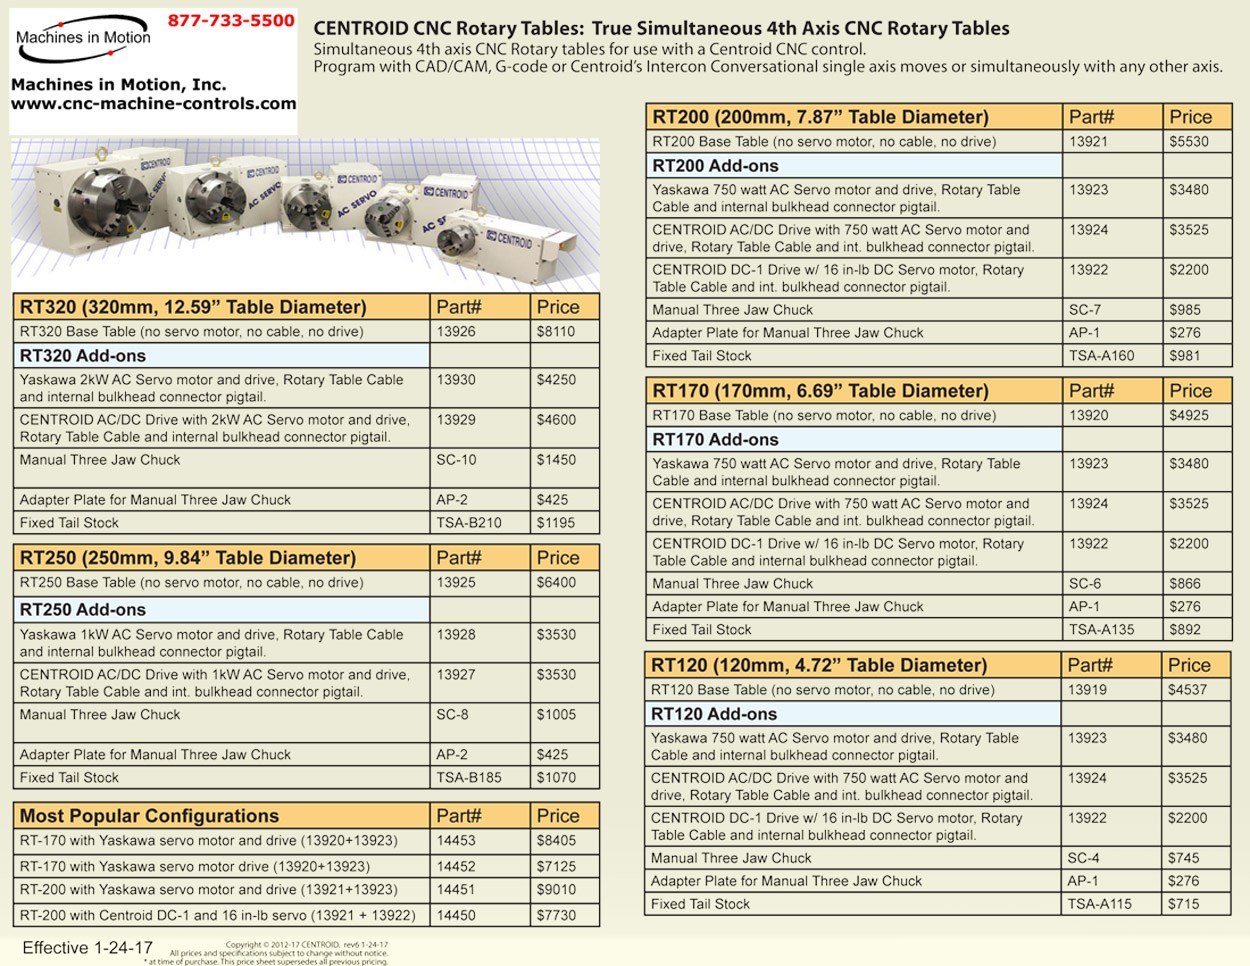 Rotary Tables Pricing